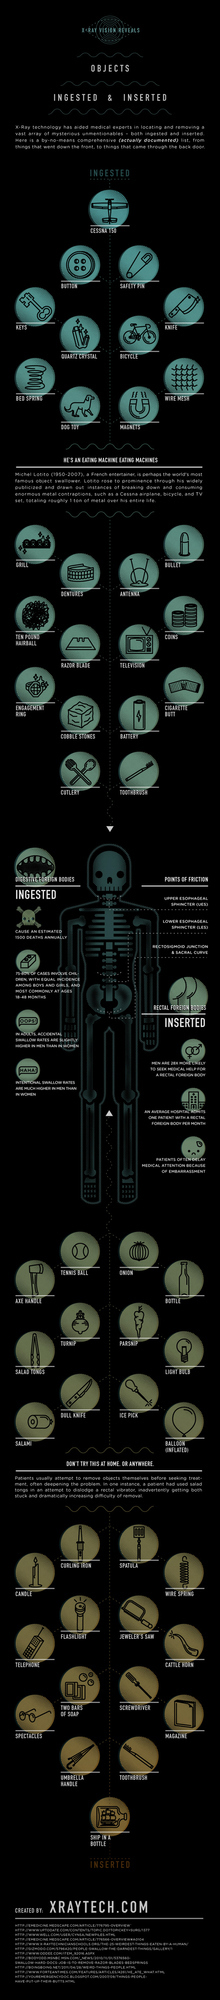 Infographic: Ingested and Inserted Objects